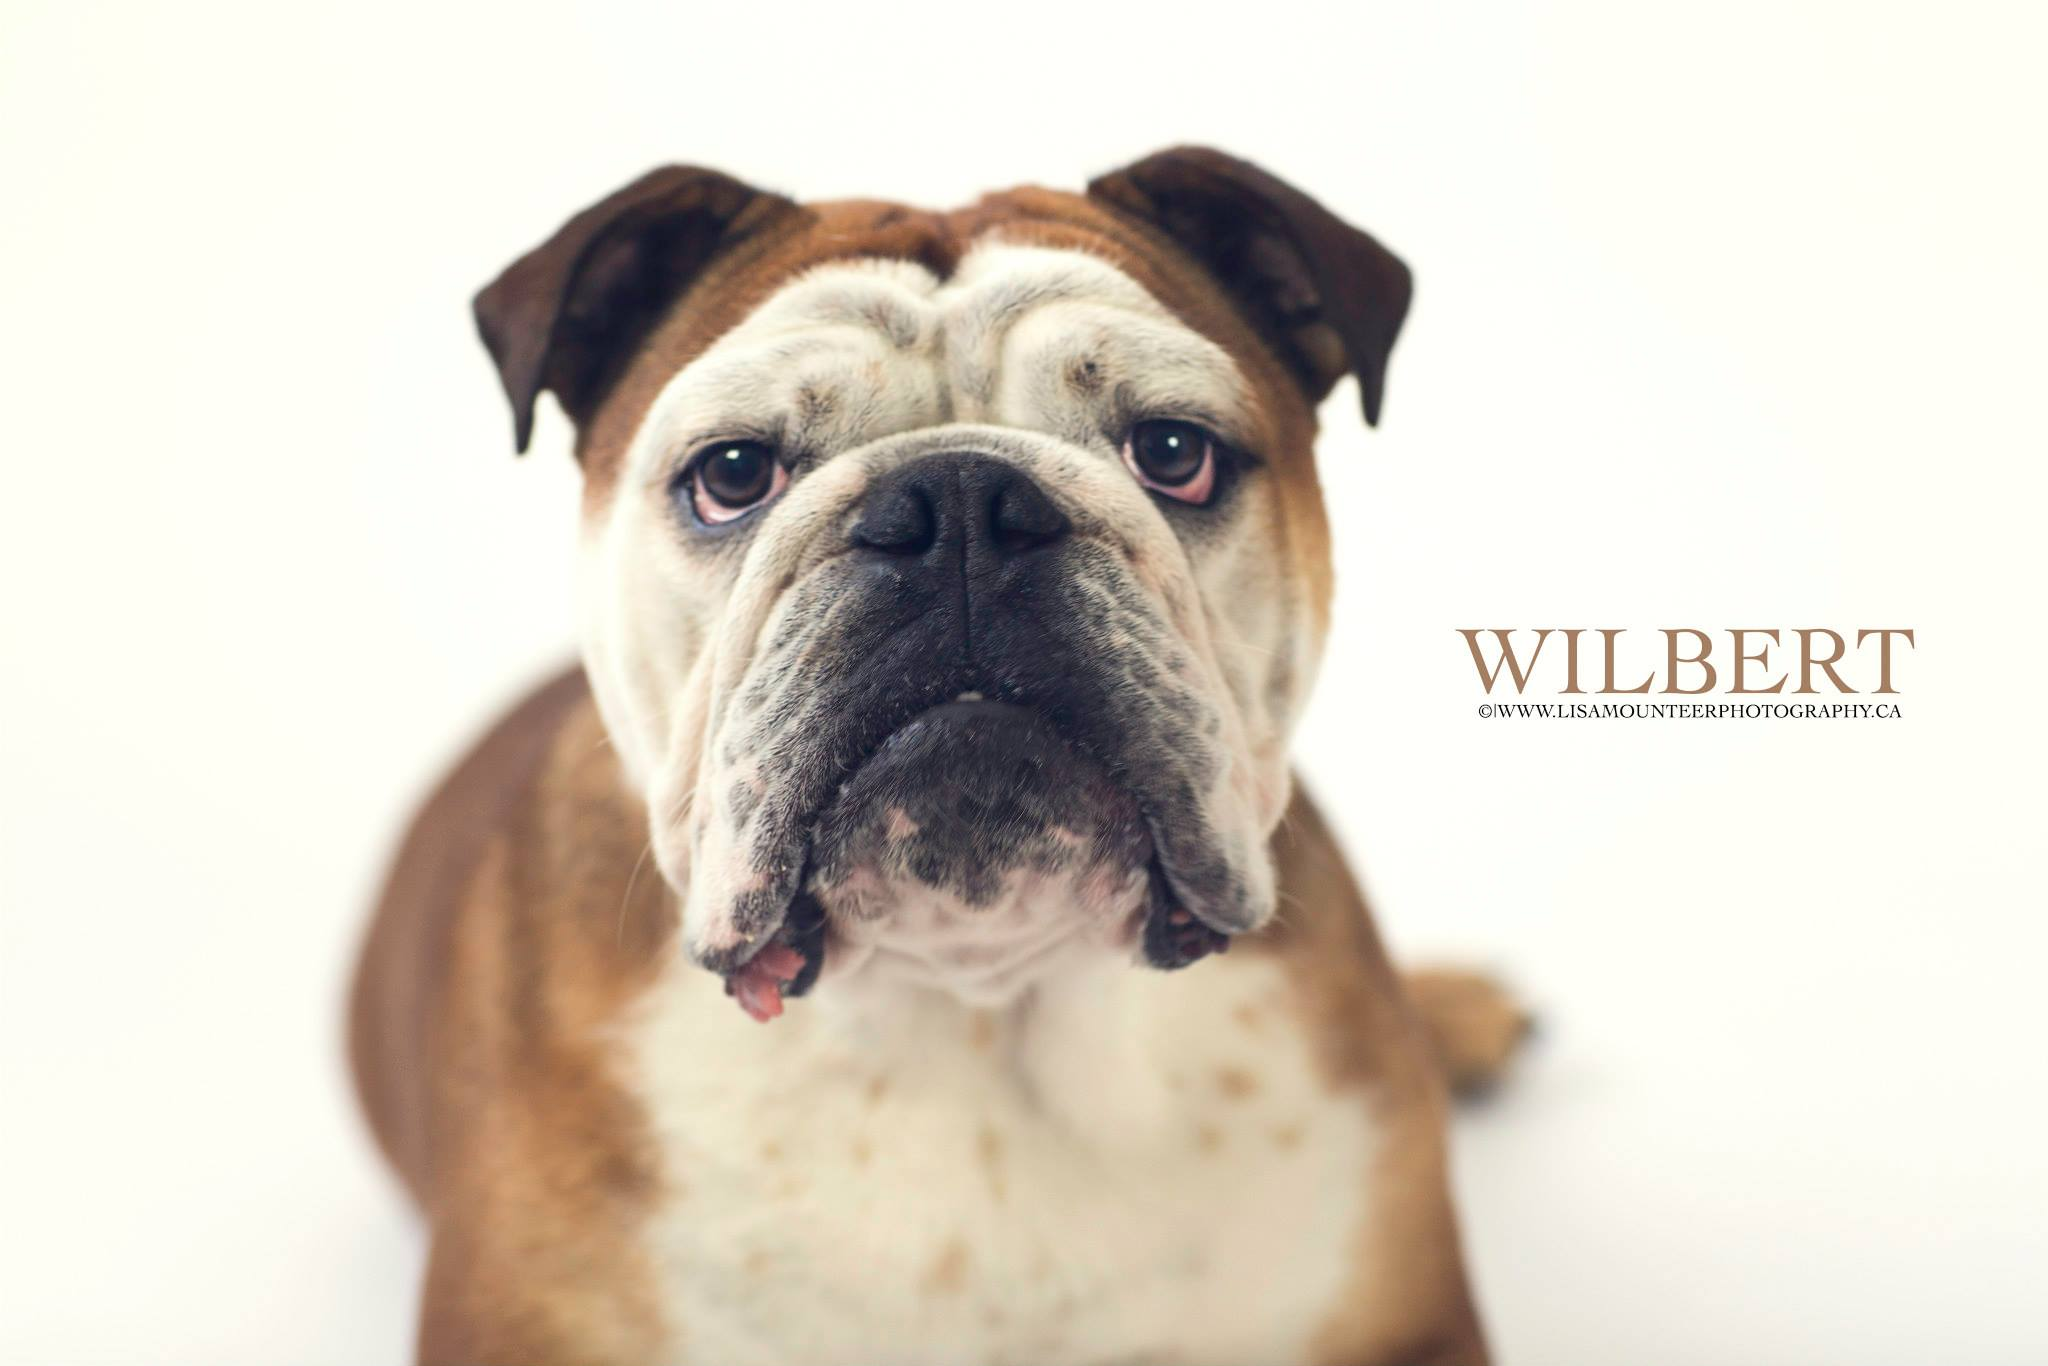 Wilbert's Birthday Portraits - Look at that Smile!